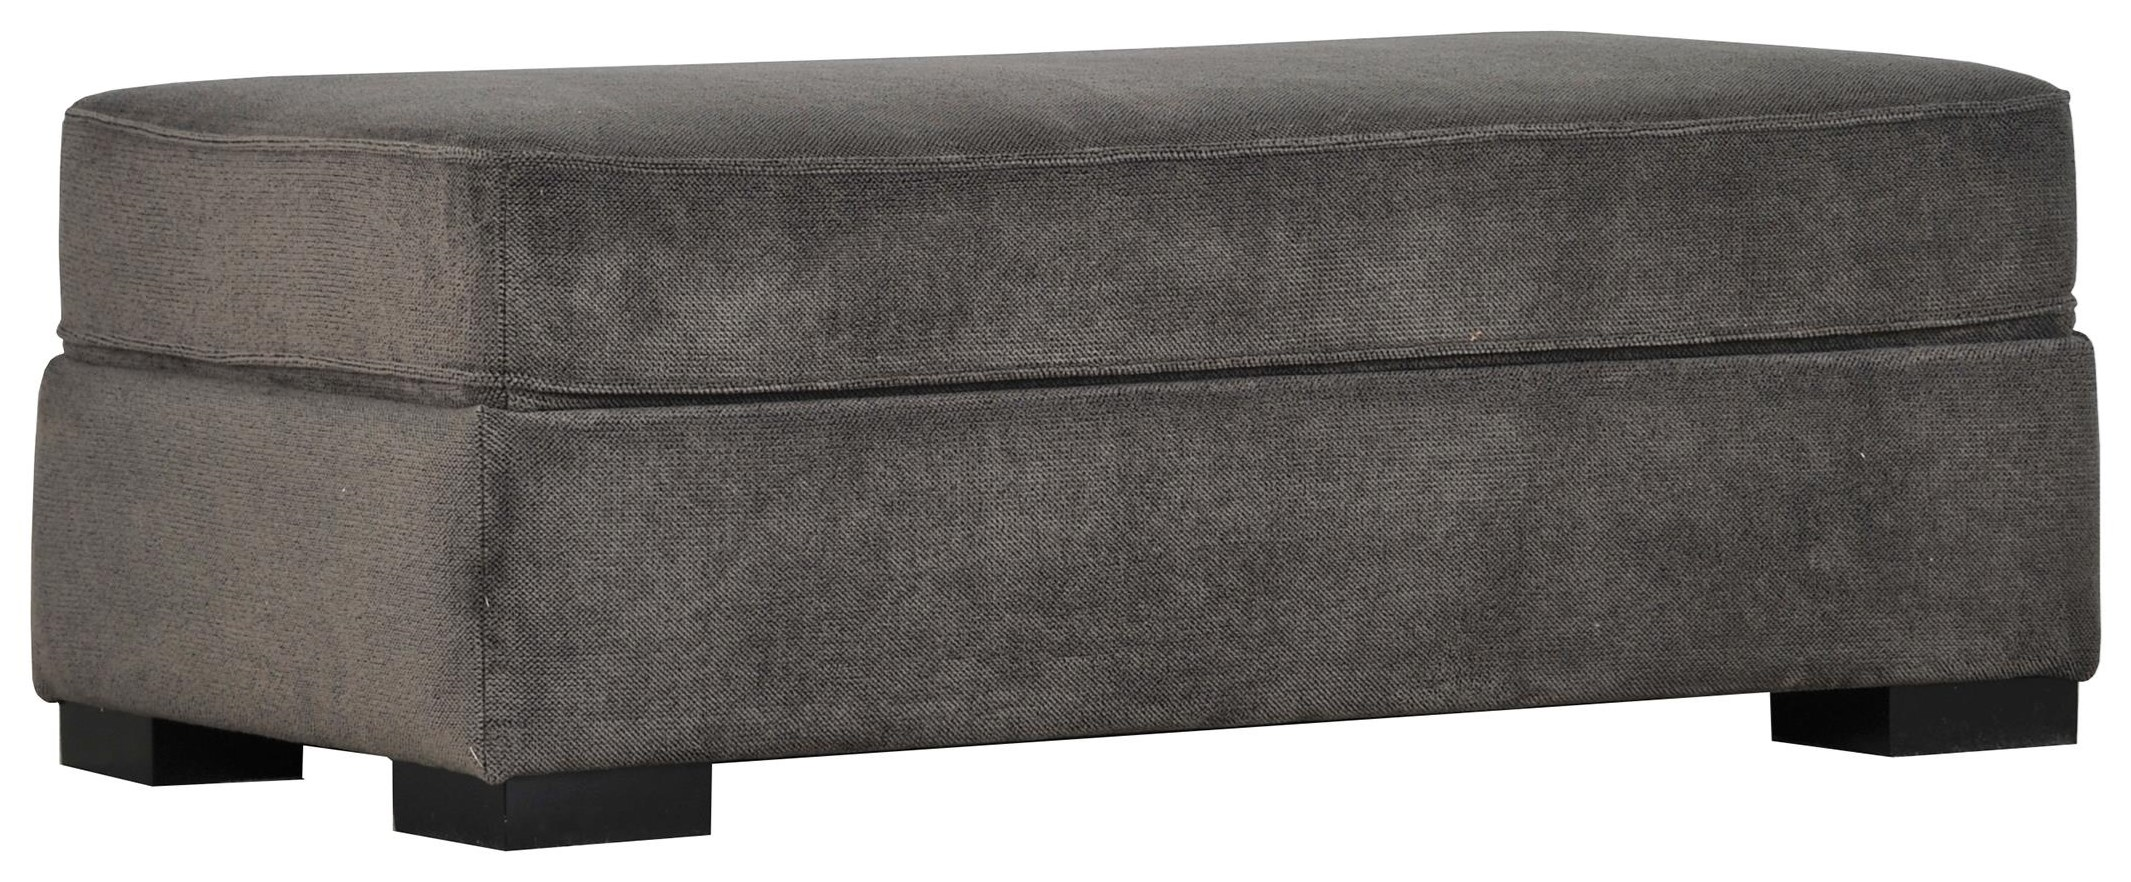 29658 Rect. Cocktail Ottoman by Sunset Home at Sadler's Home Furnishings